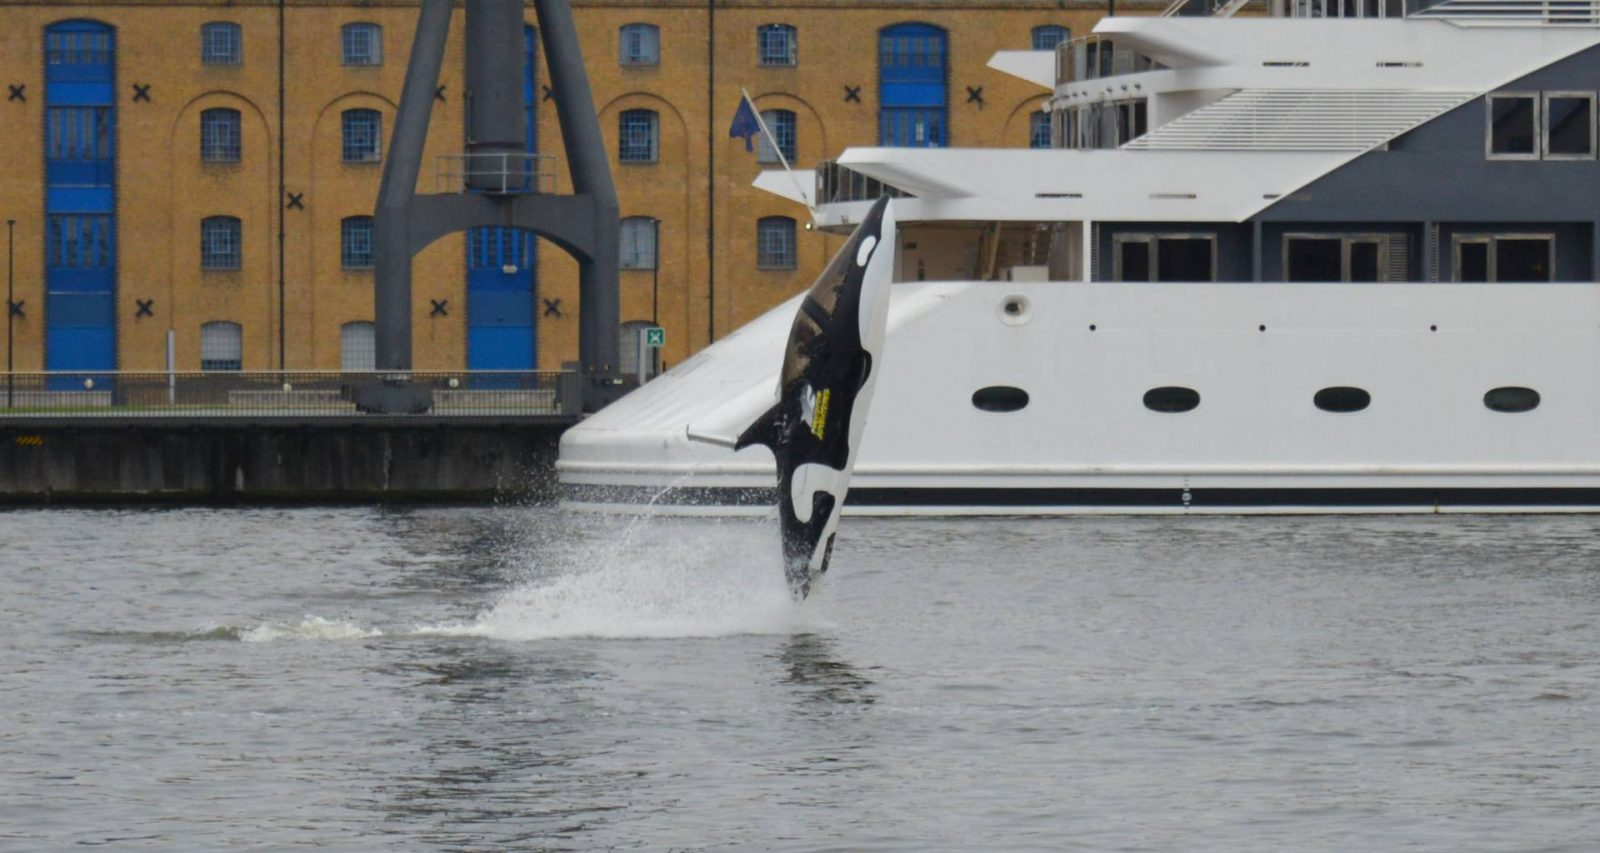 Trying Out the Seabreacher at London's Royal Victoria Docks, Seabreacher leaping out of the water